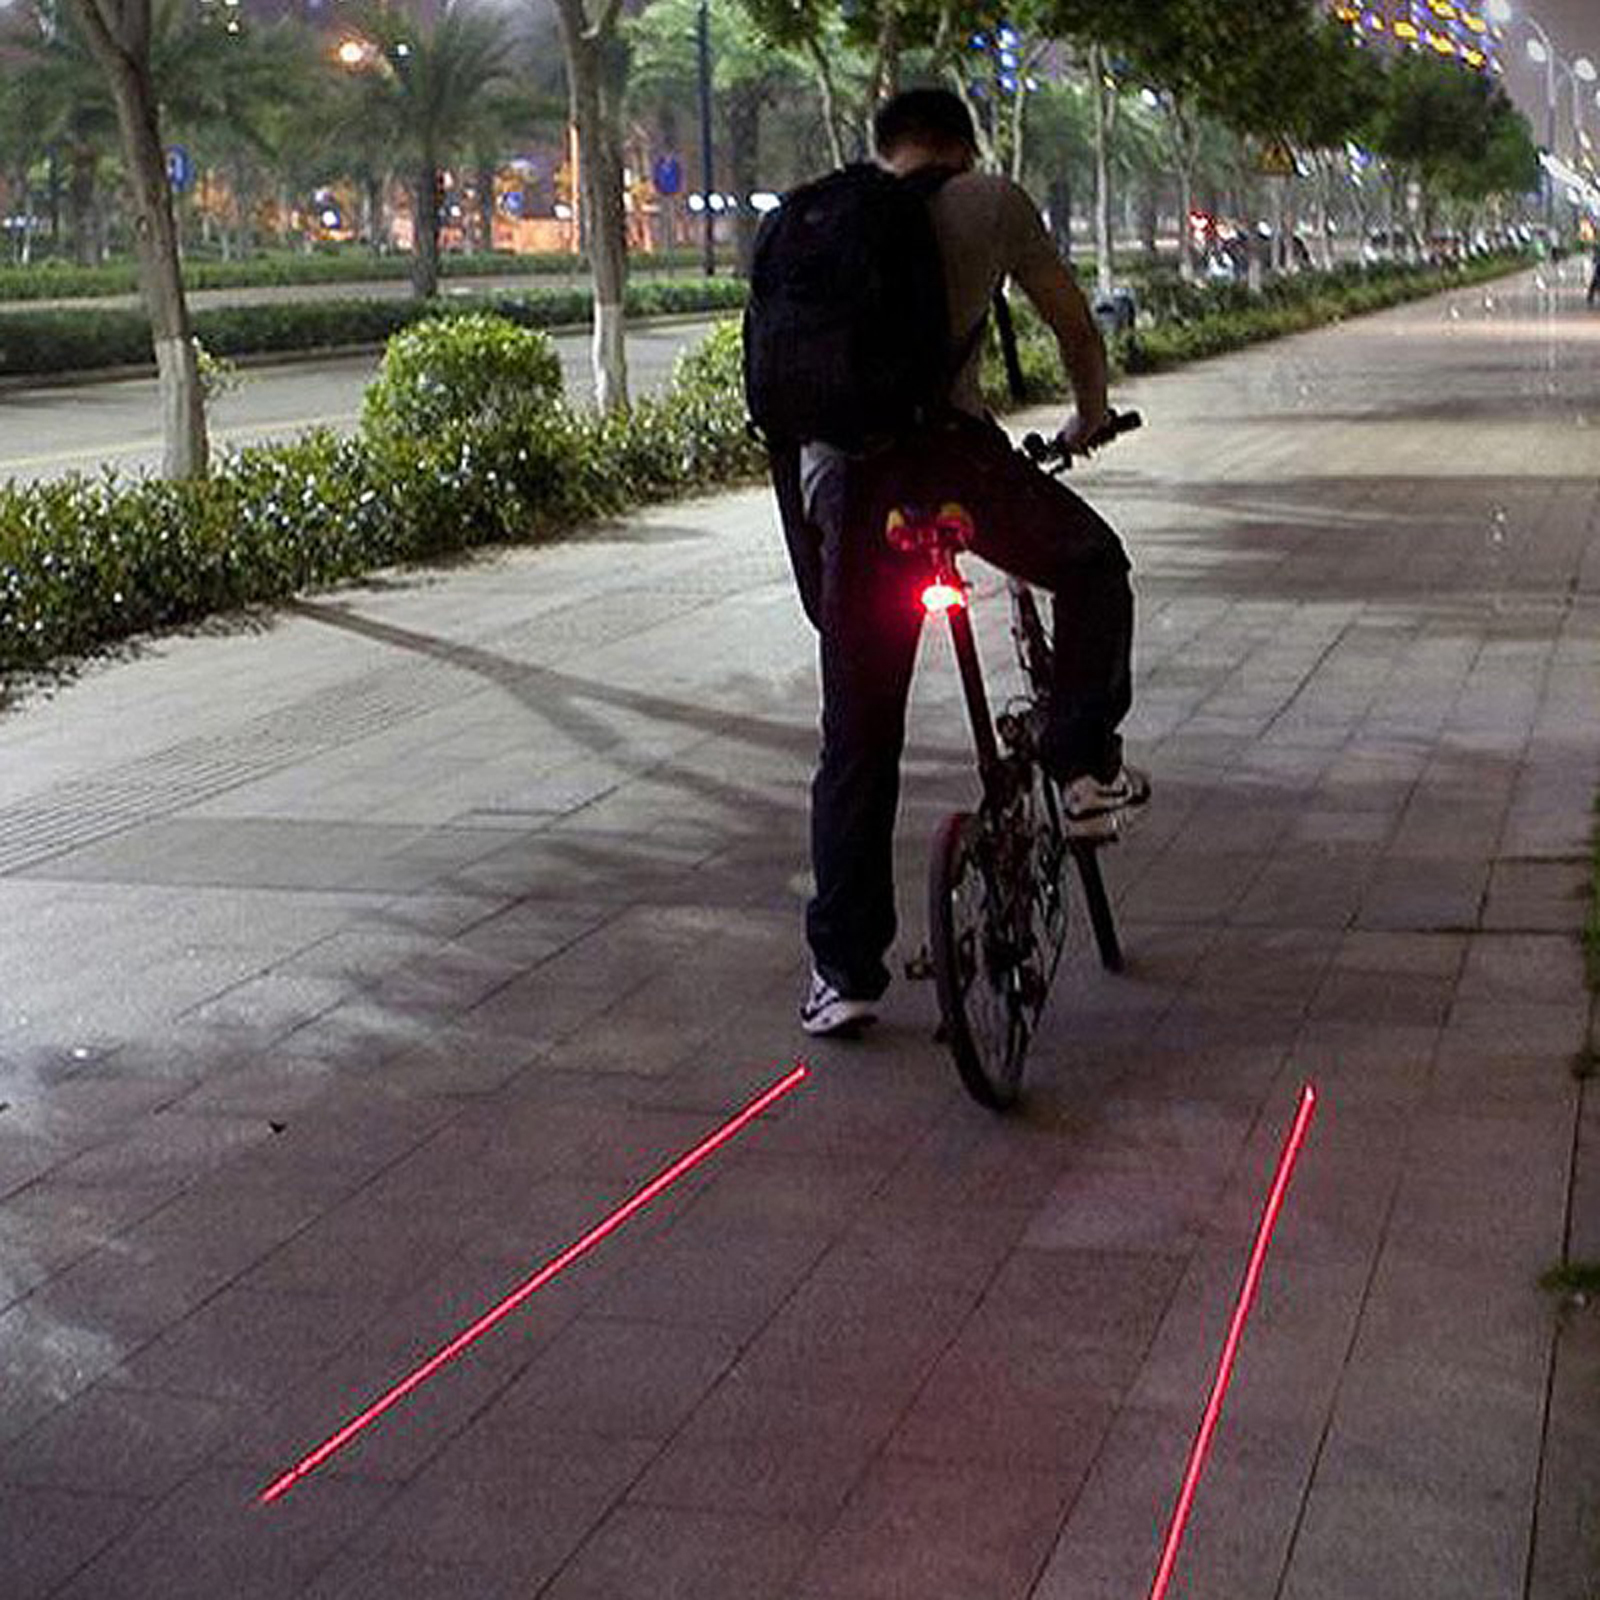 Buy Cheap Flashing Bike Light Compare Cycling Prices For Best Uk Deals Bicycle Tail Tramline Laser